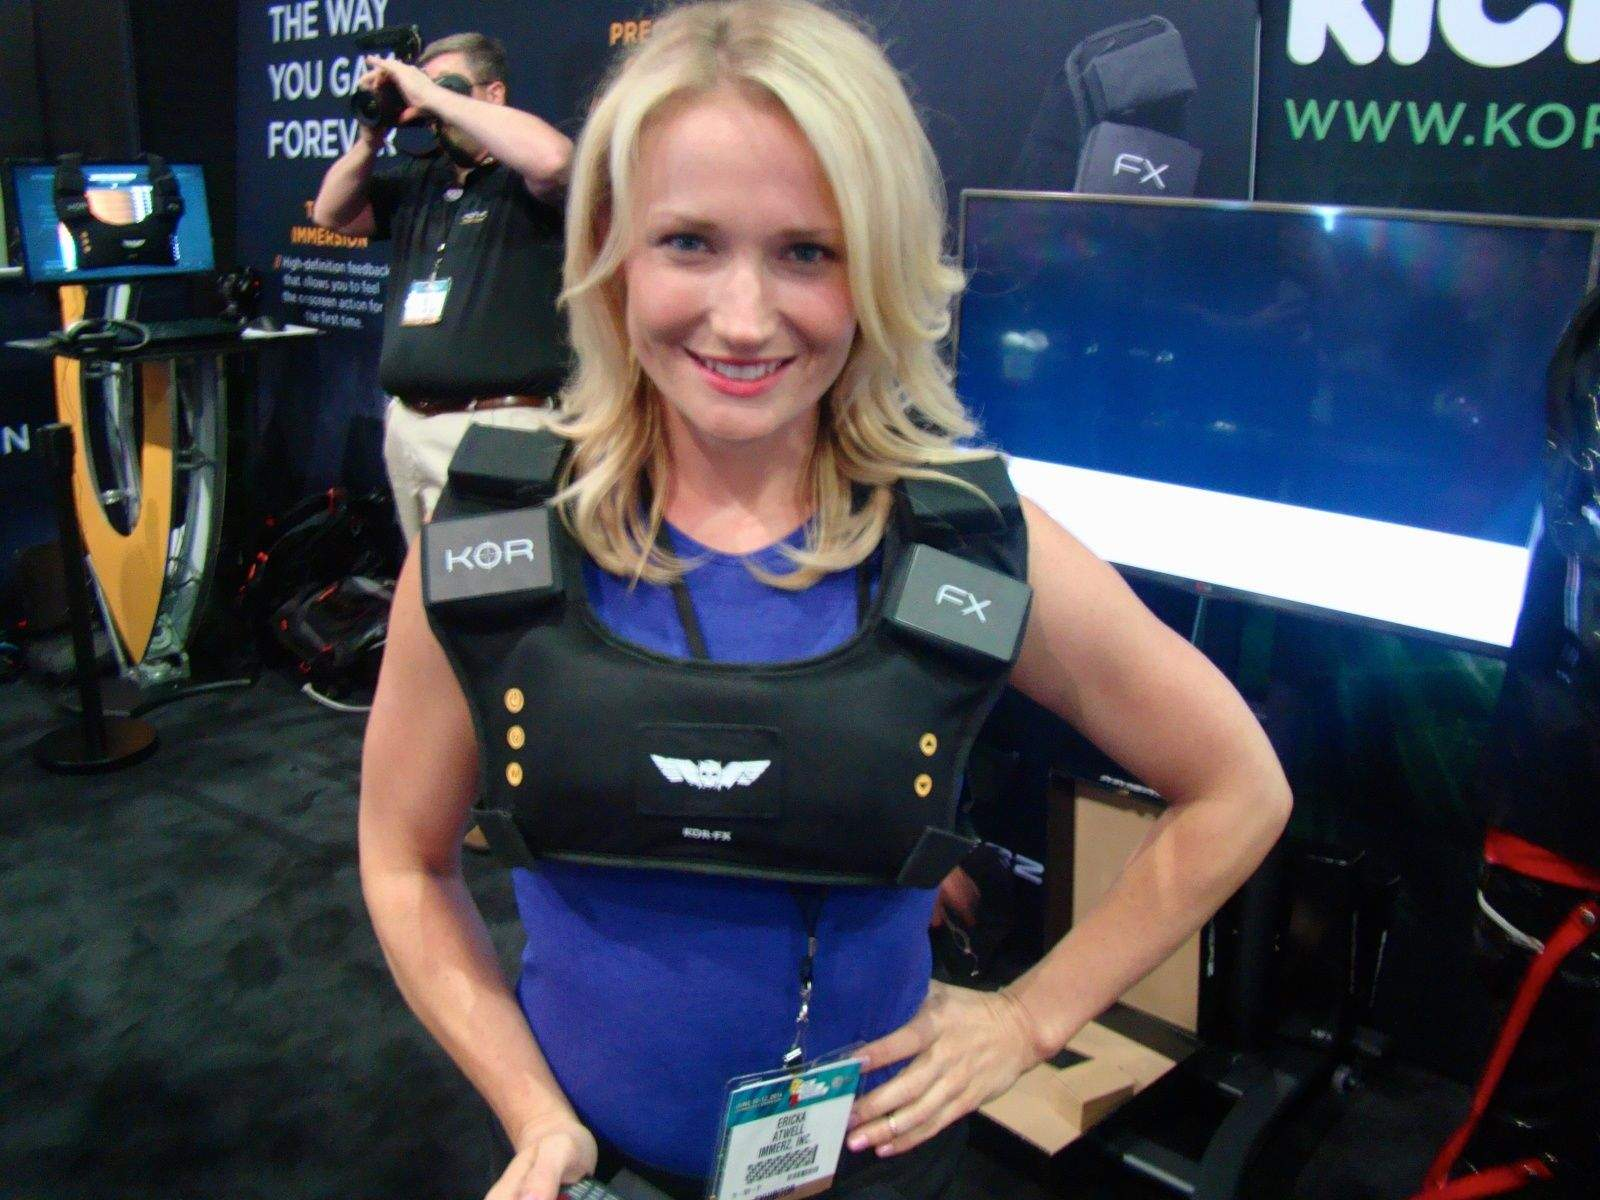 The KOR-FX Vest modeled by an actress at the E3 booth. Photo: Rob LeFebvre/Cult of Mac